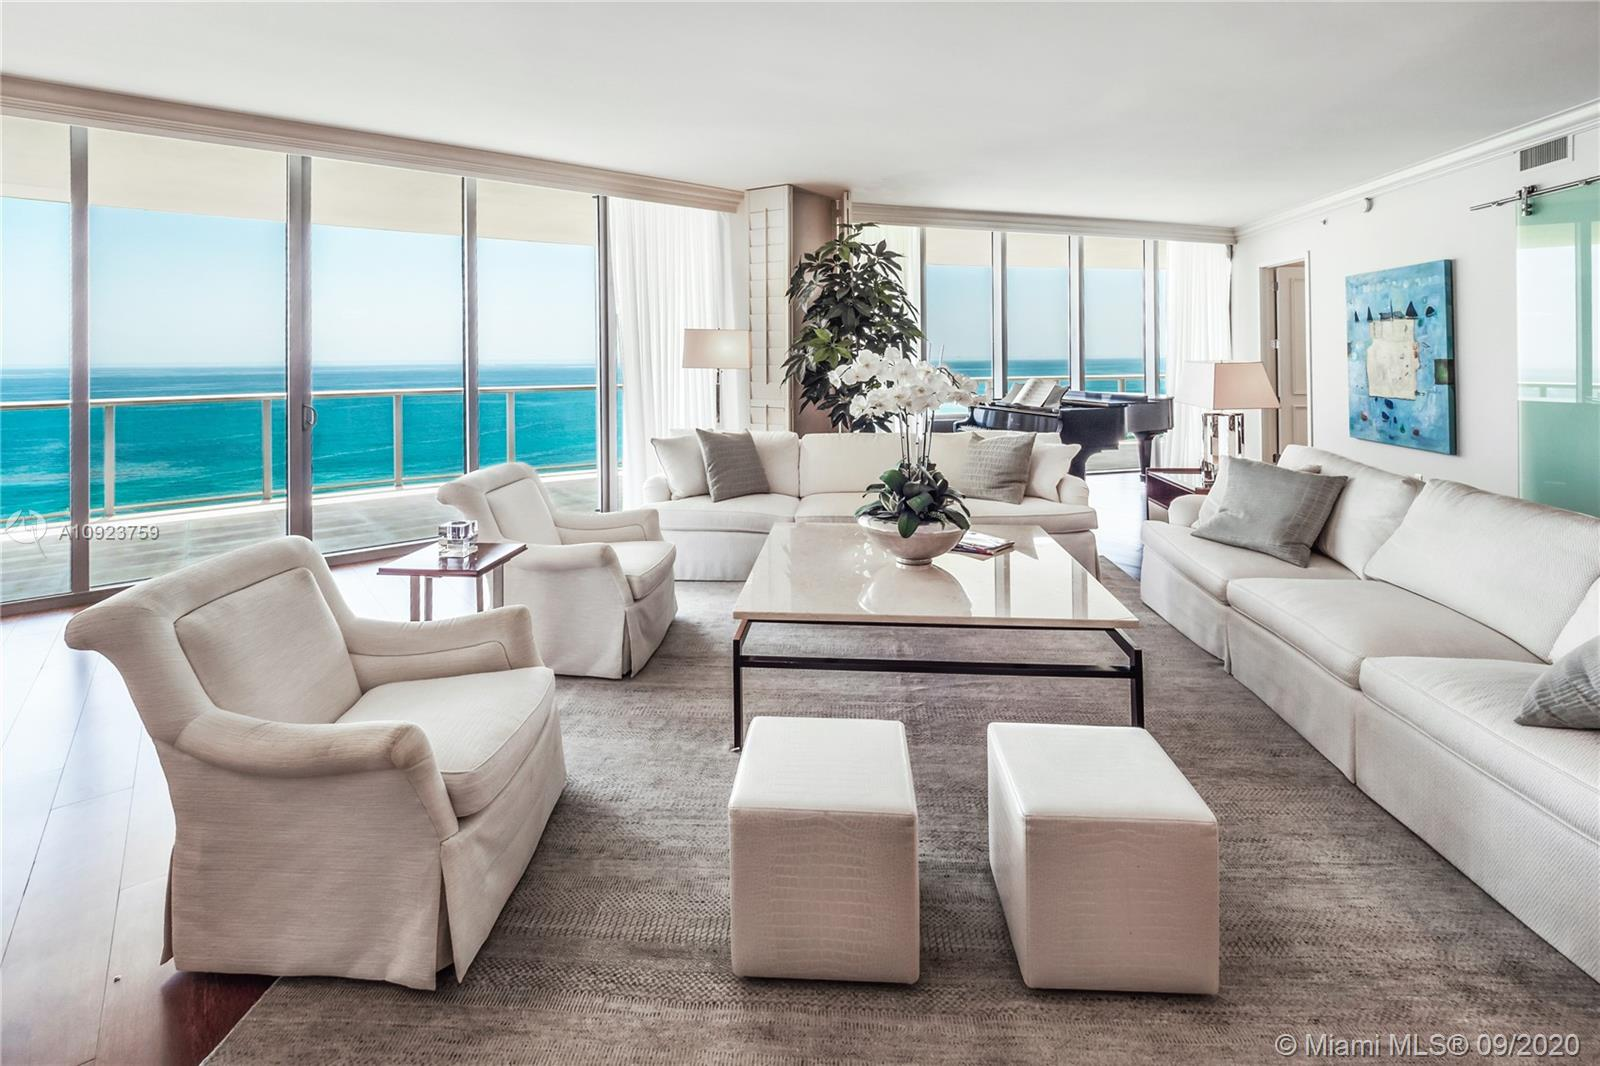 St. Regis 1900 is ideally perched on the 19th floor at St. Regis's center tower offering breathtaking views of the ocean as well as the coastline to the north and south. The unit boasts a 1,304 sq ft terrace with ample room for entertaining or simply enjoying the vistas and sea air. Designed with impeccable taste and style, 1900 offers a spacious interior living area, wood floors, state of the art kitchen, a spacious master suite with walk-in closet, and a private elevator foyer. Residents enjoy VIP access to all St. Regis hotel amenities, Remede Spa, cabanas, 24-hour concierge, valet, housekeeping, restaurants, room service, chef, white-glove butler services, and more. St. Regis is COVID-compliant and offers endless opportunities to indulge and create your own resort lifestyle experience.